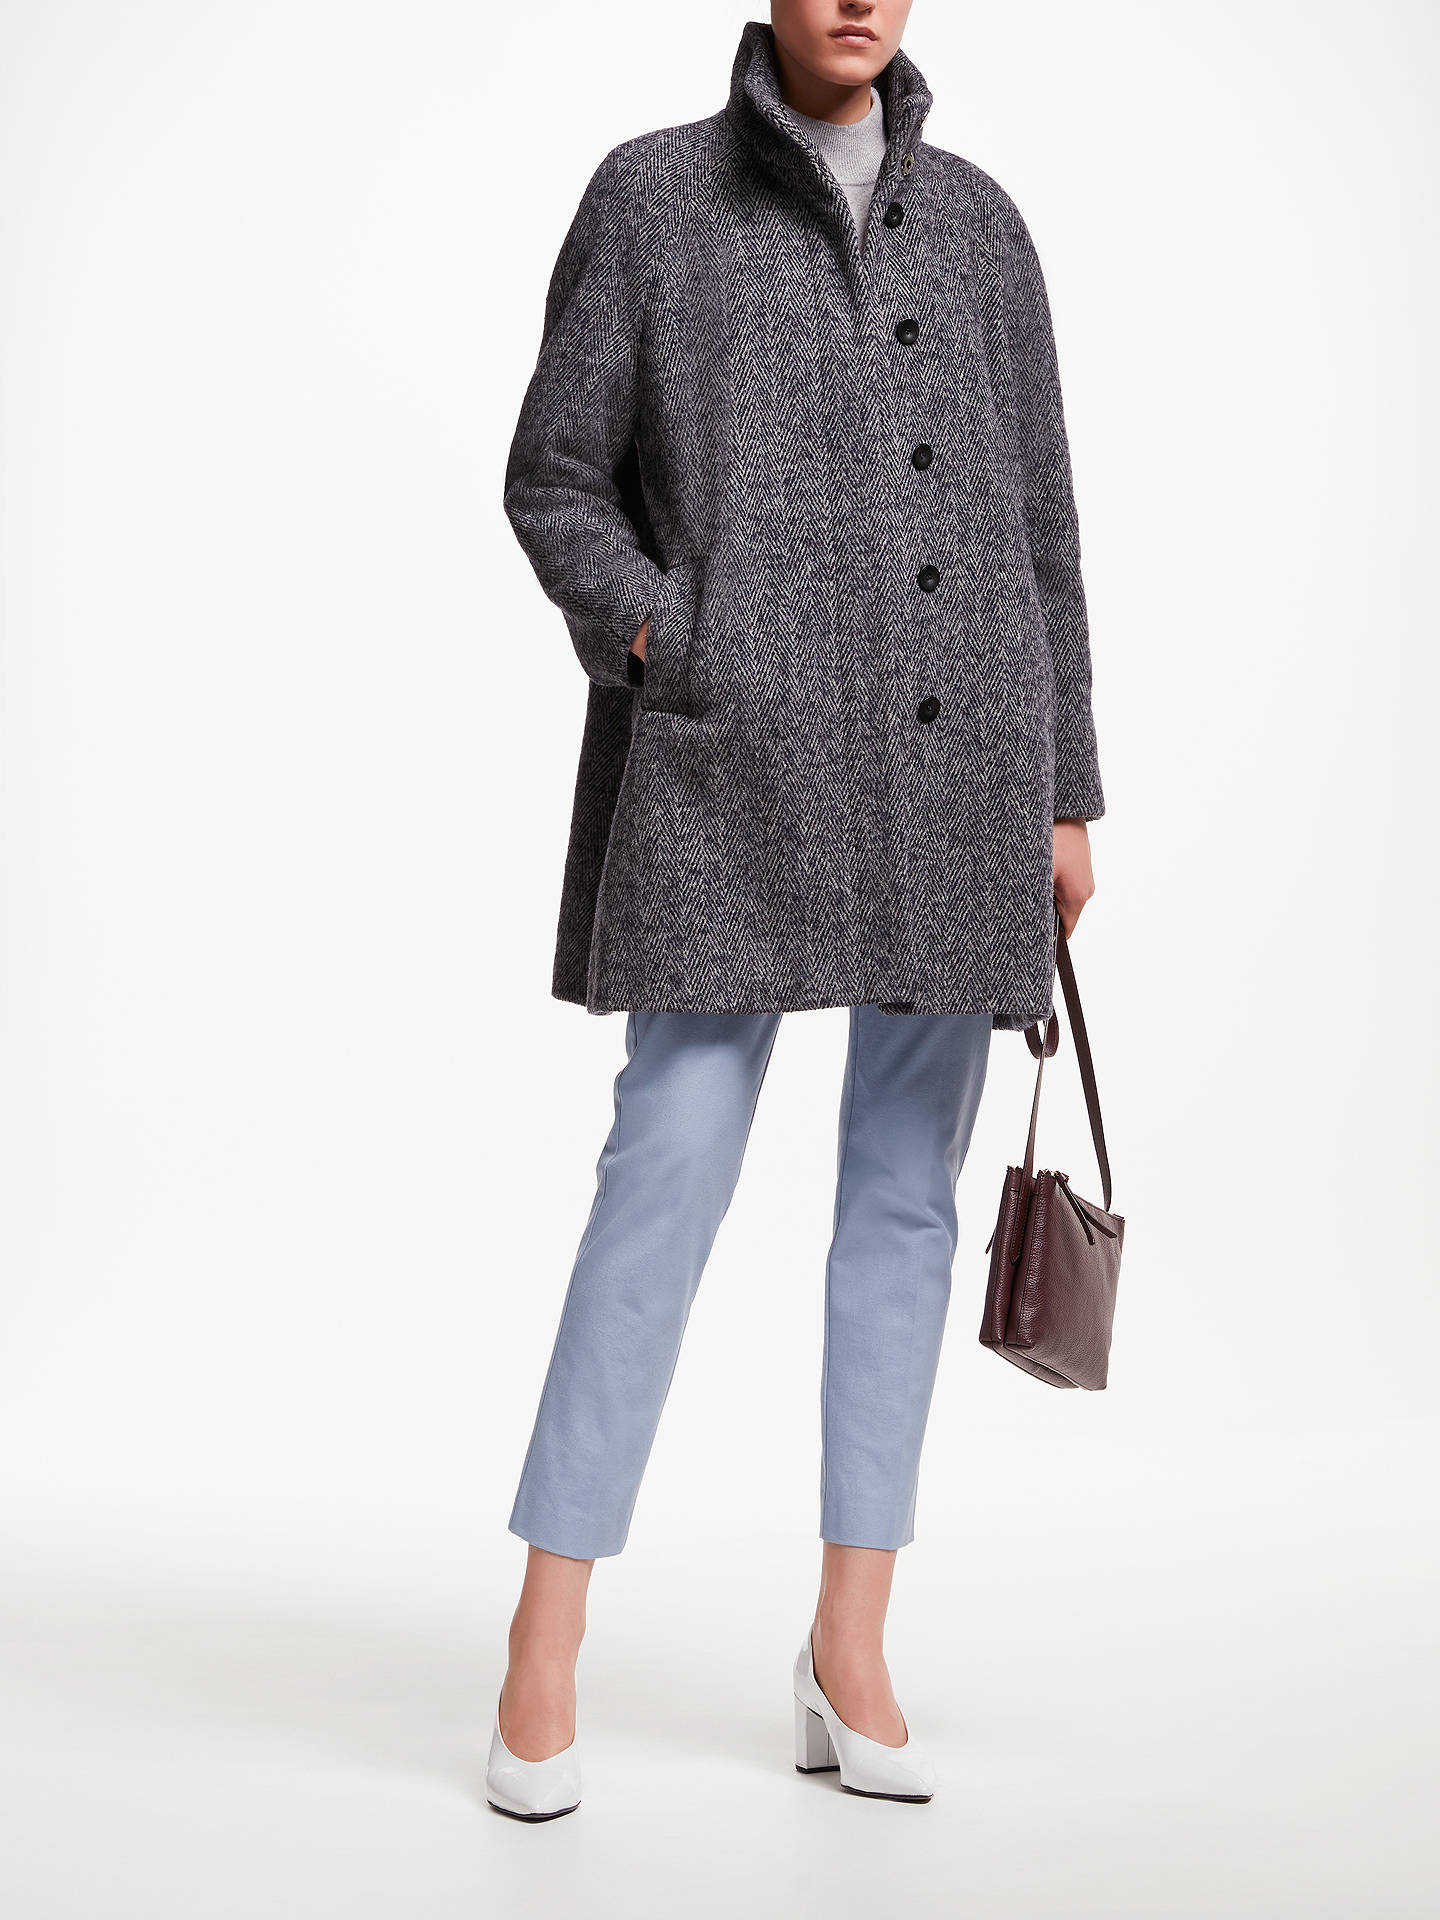 BuyJohn Lewis & Partners Funnel Neck Swing Coat, Navy Texture, 8 Online at johnlewis.com